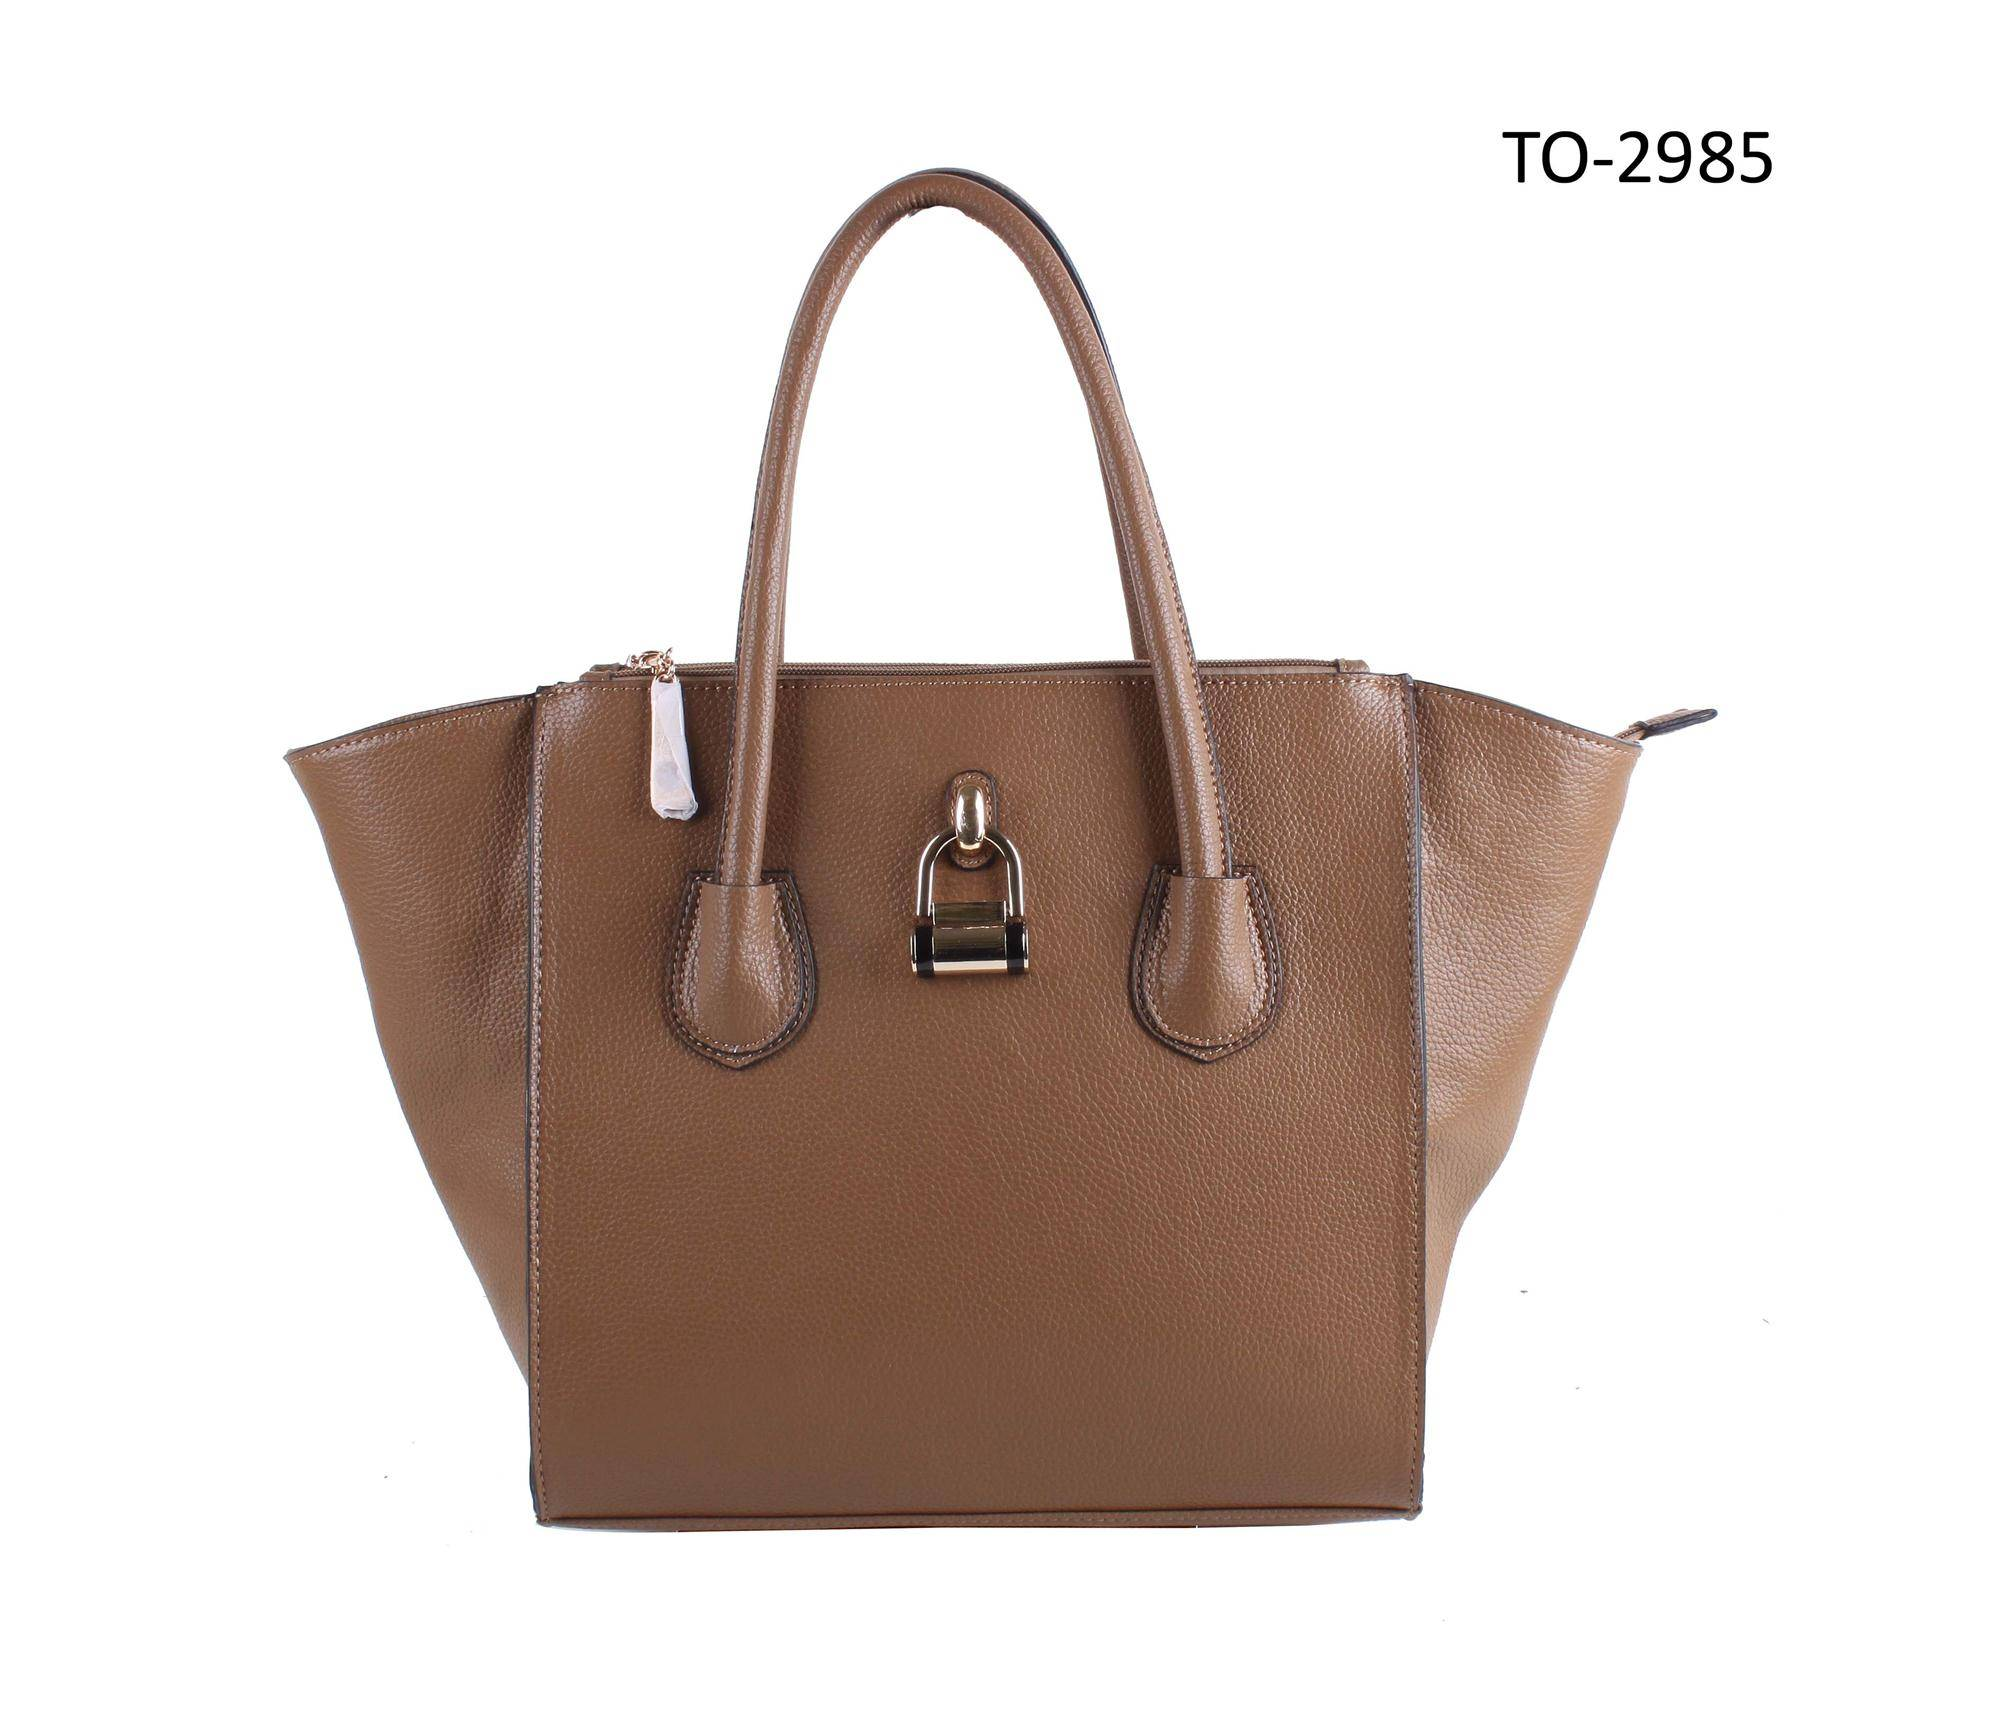 Hot Sell Elegant Fashion Lady Faux Leather Double Top Handle Handbag